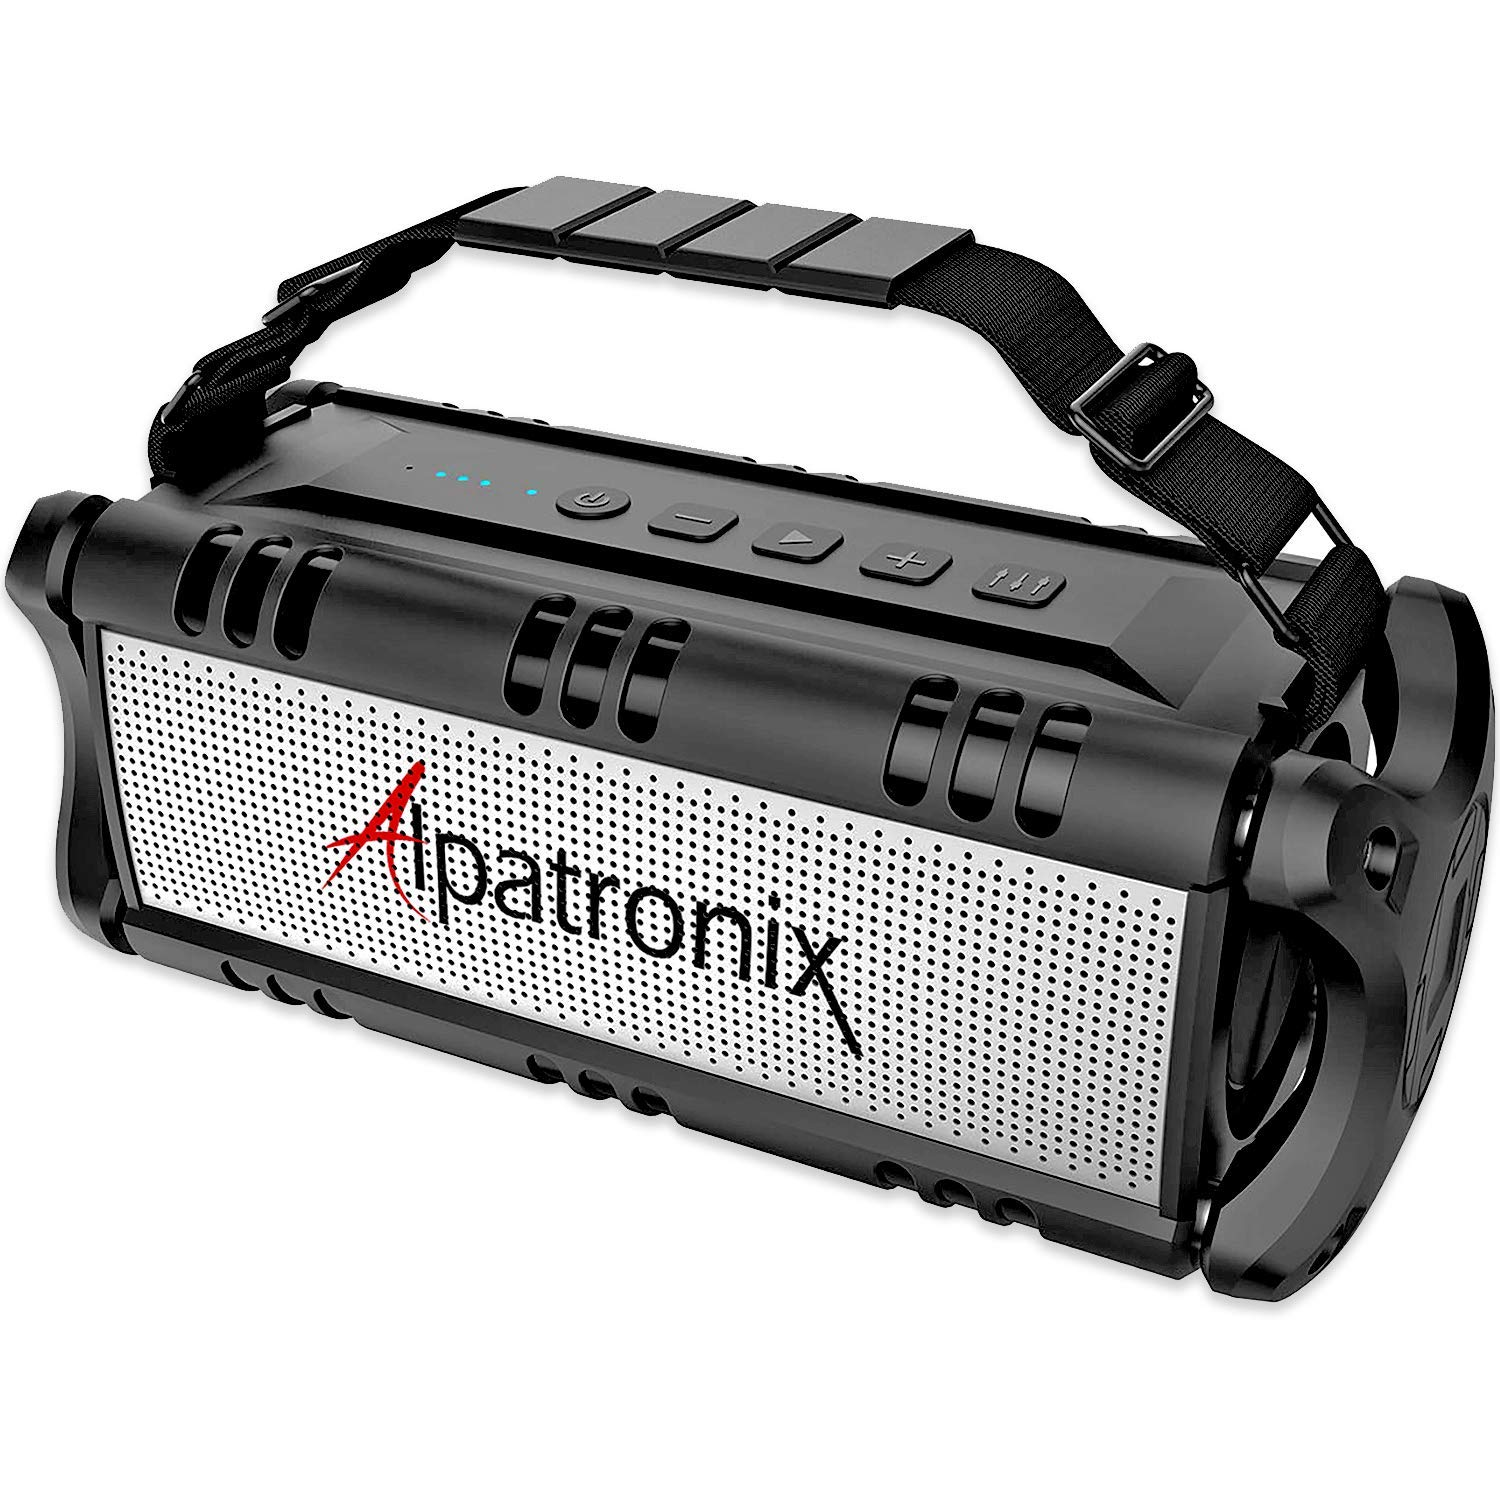 Waterproof Bluetooth Speaker, 40W Portable Wireless Speaker & Power Bank, Shockproof w/TWS, DSP, Stereo, Subwoofer, USB Drive & Equalizer, Alpatronix AX500 for Home, Parties, Indoor & Outdoor - Black